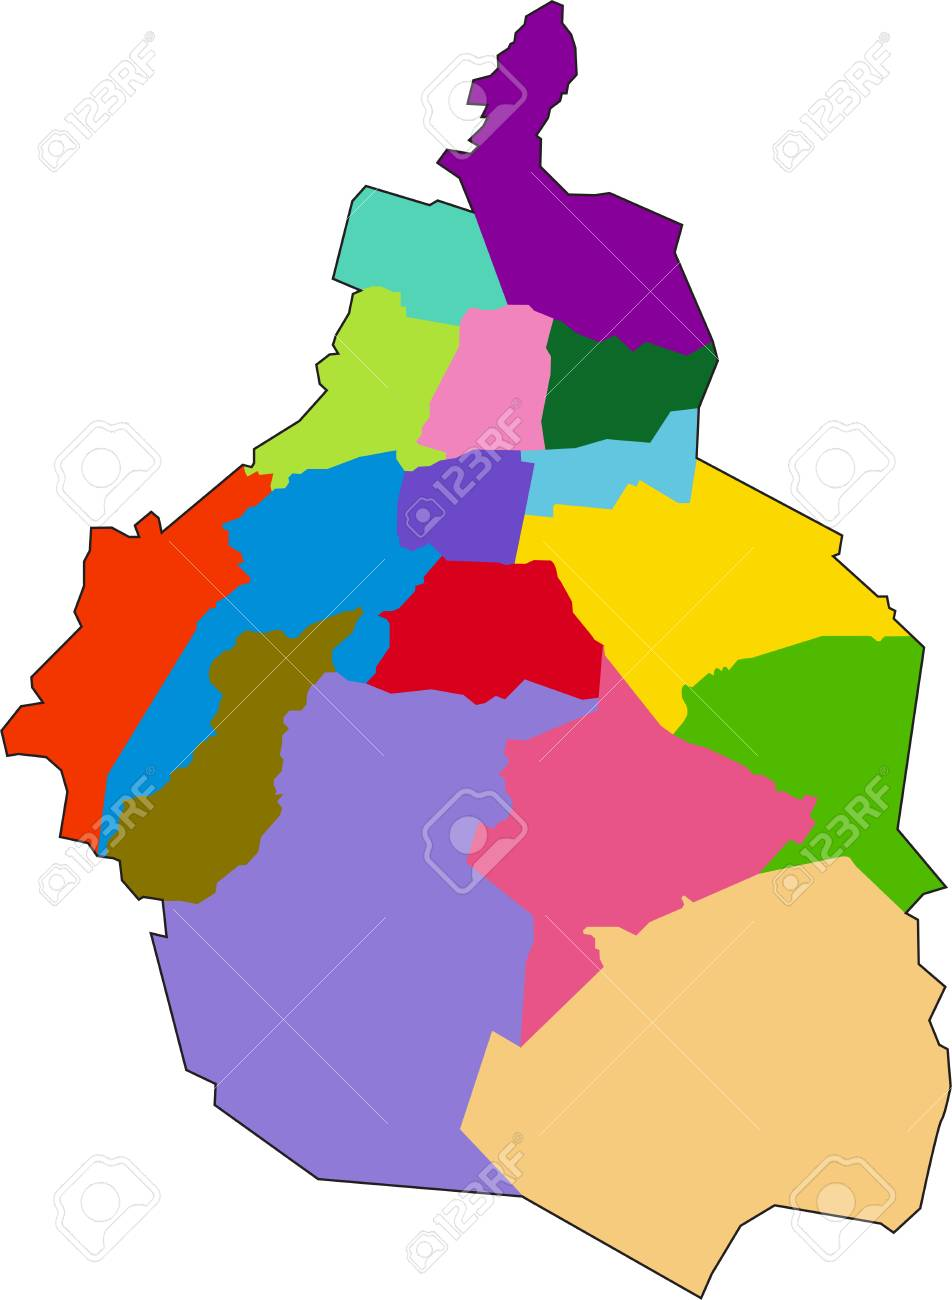 Mexico City Map Royalty Free Cliparts, Vectors, And Stock ... on